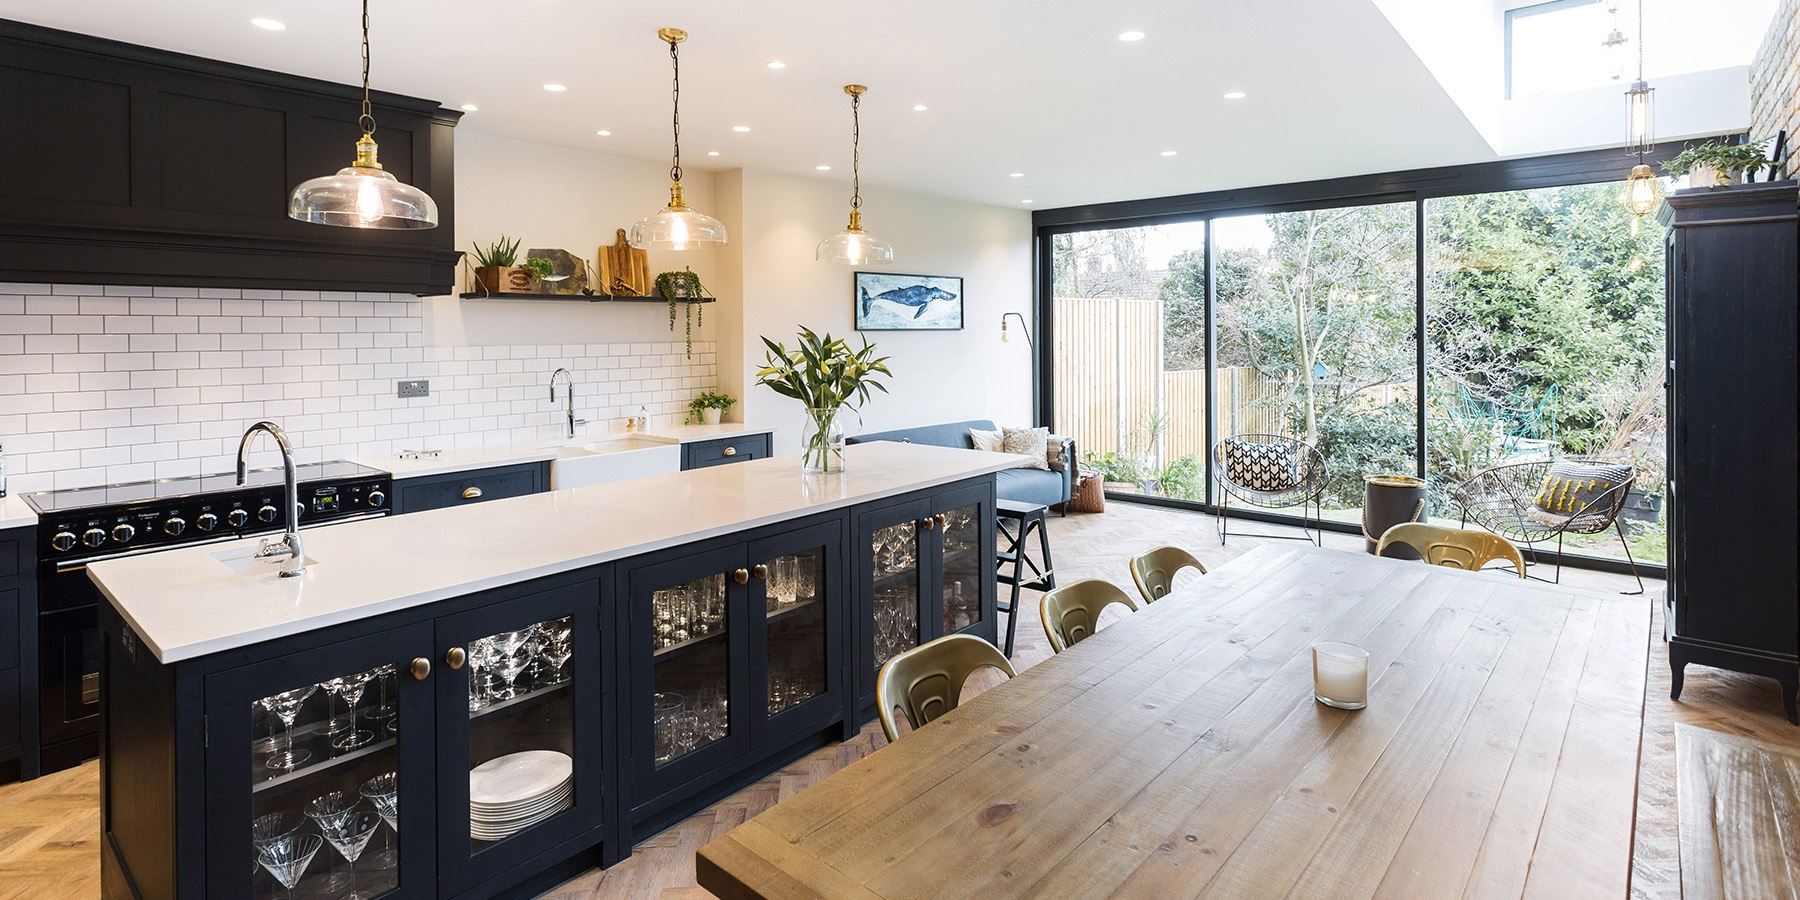 Open-plan Luxury Industrial Style Kitchen  - Burlanes bespoke Hoyden kitchen with an authentic industrial decor, beautiful dining table and amazing glass doors.